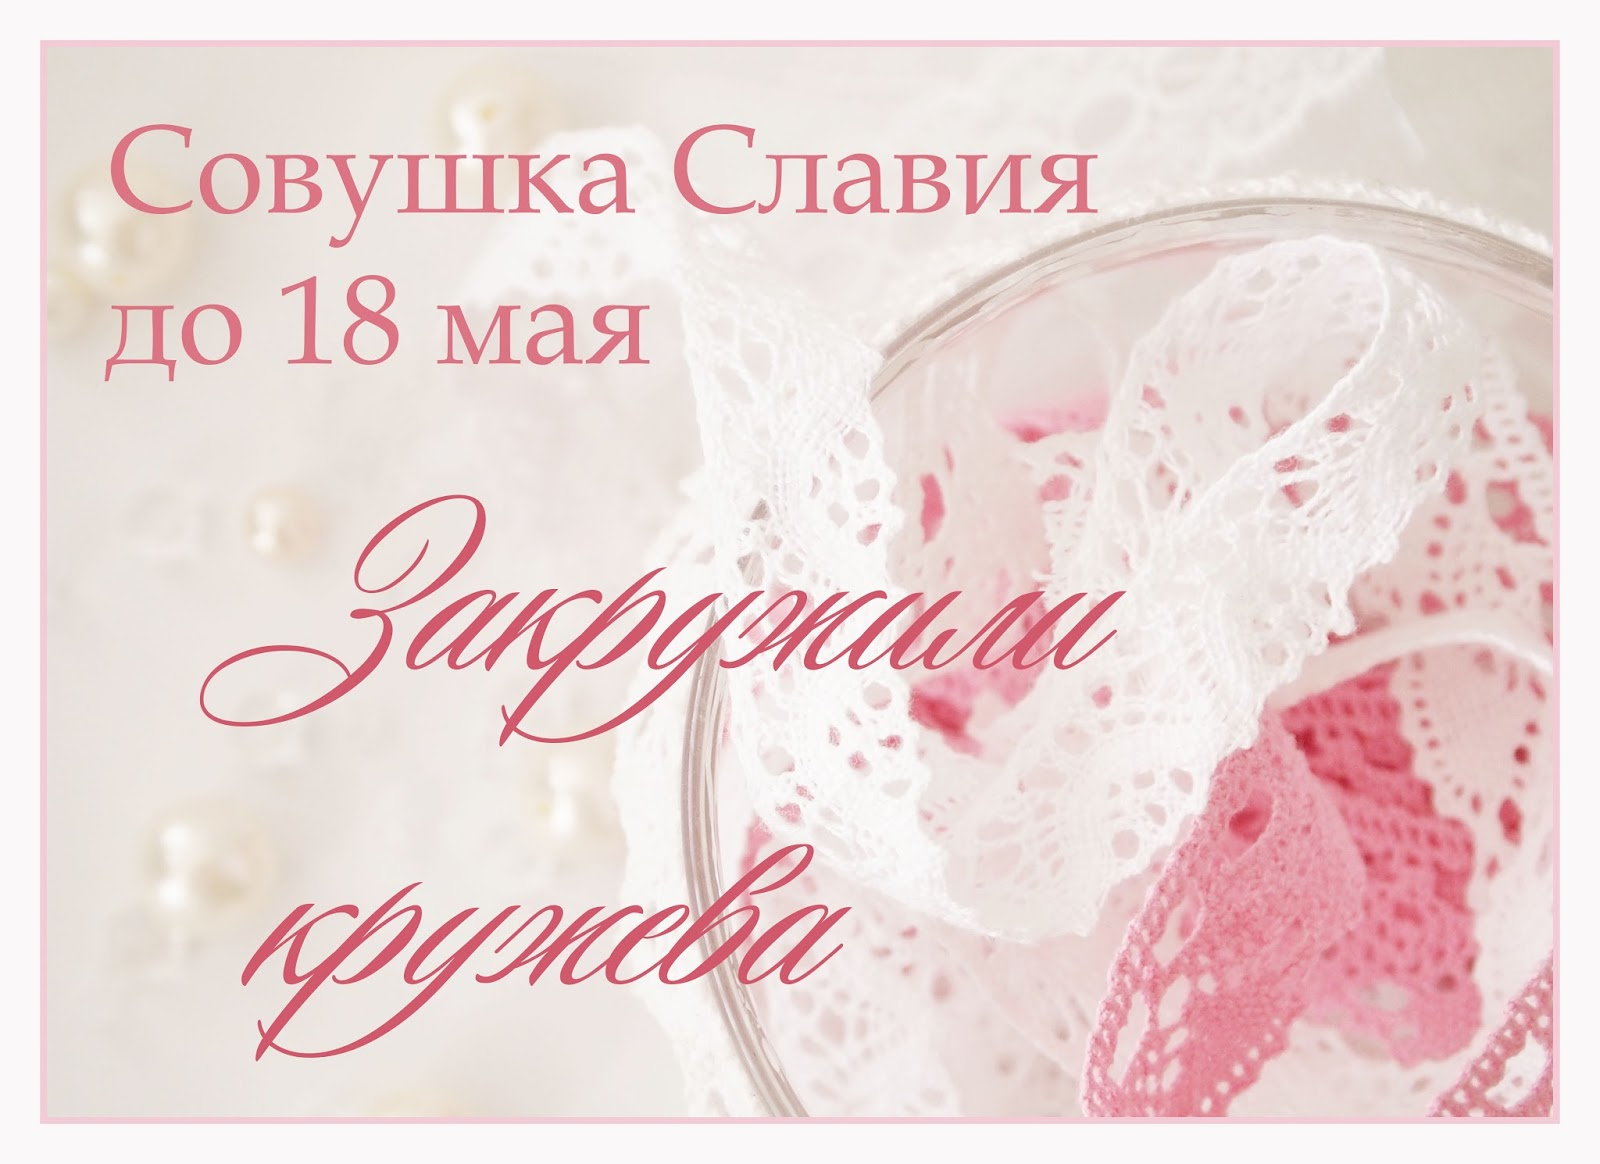 http://sovushkaslavia.blogspot.ru/2014/04/blog-post_21.html